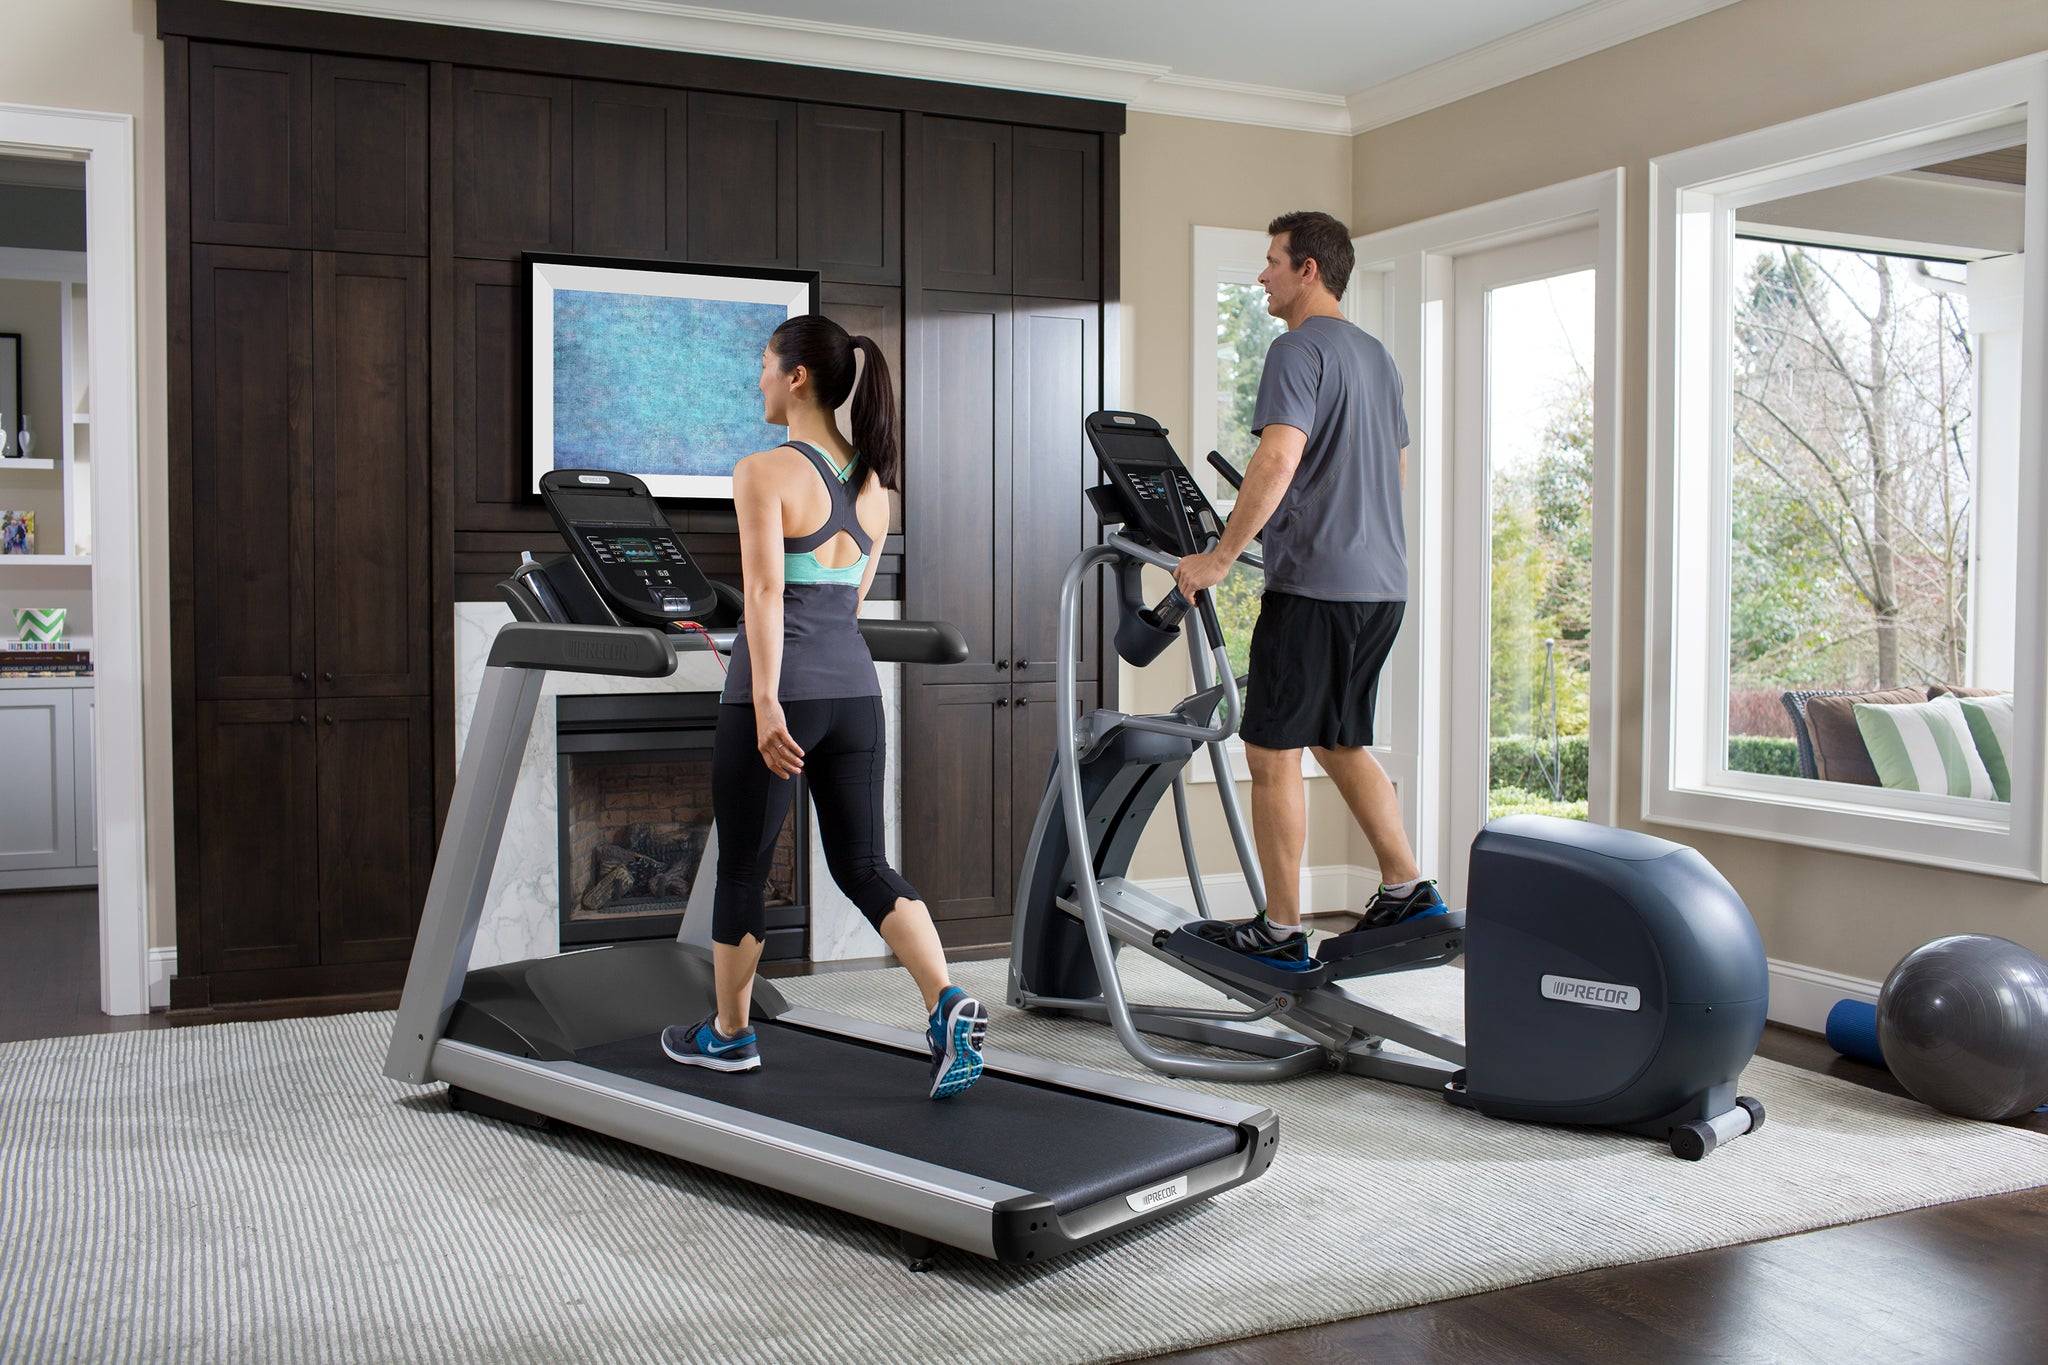 Feel the Precor Treadmill Difference